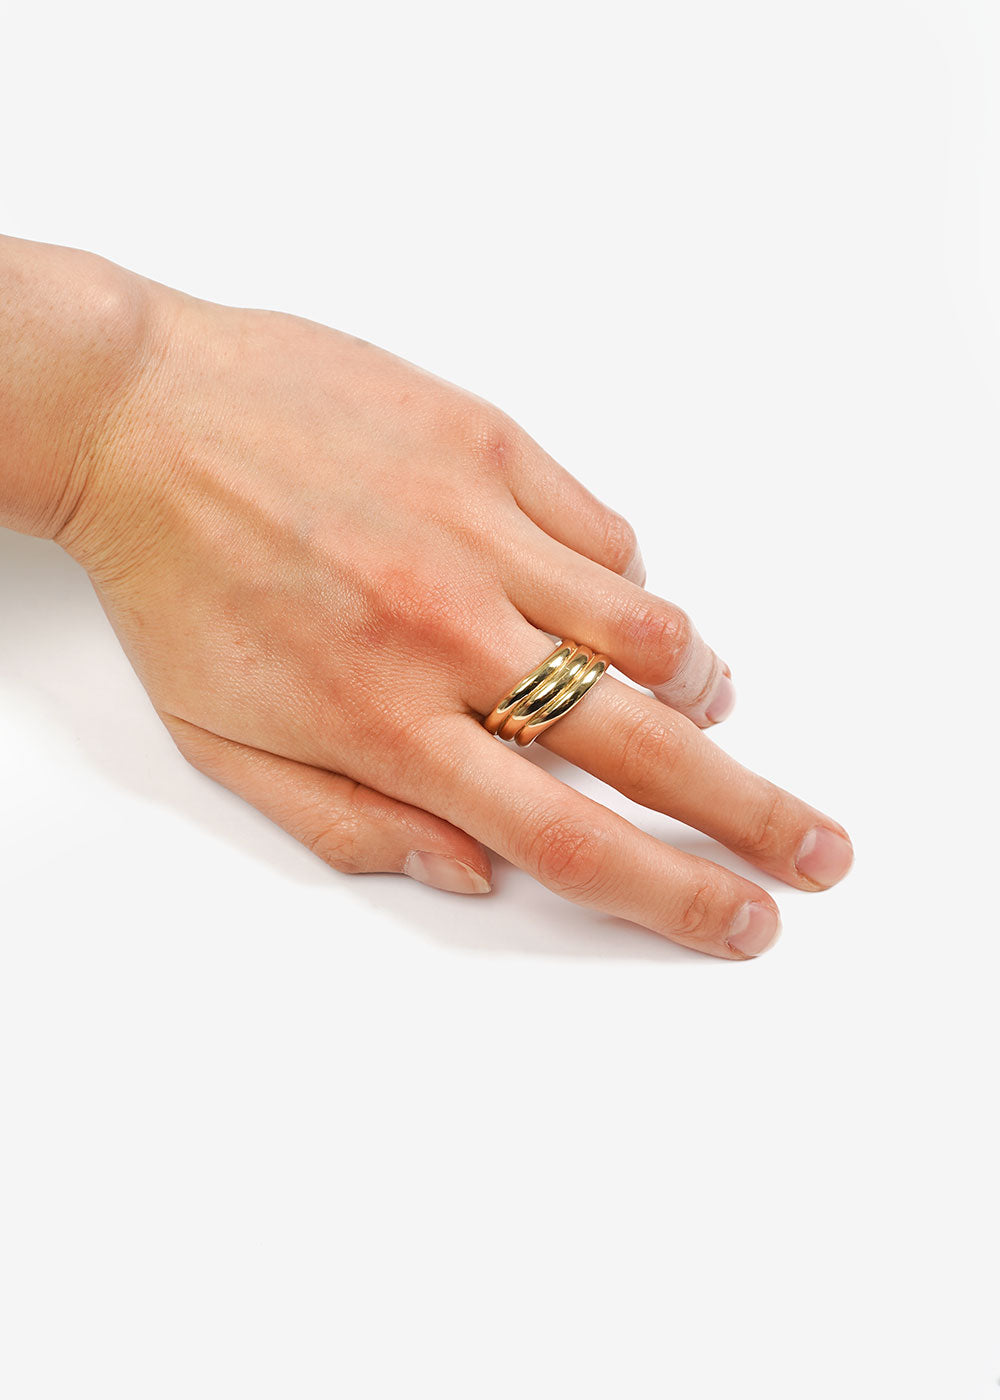 LUINY Waves Ring No. 2 — Shop sustainable fashion and slow fashion at New Classics Studios